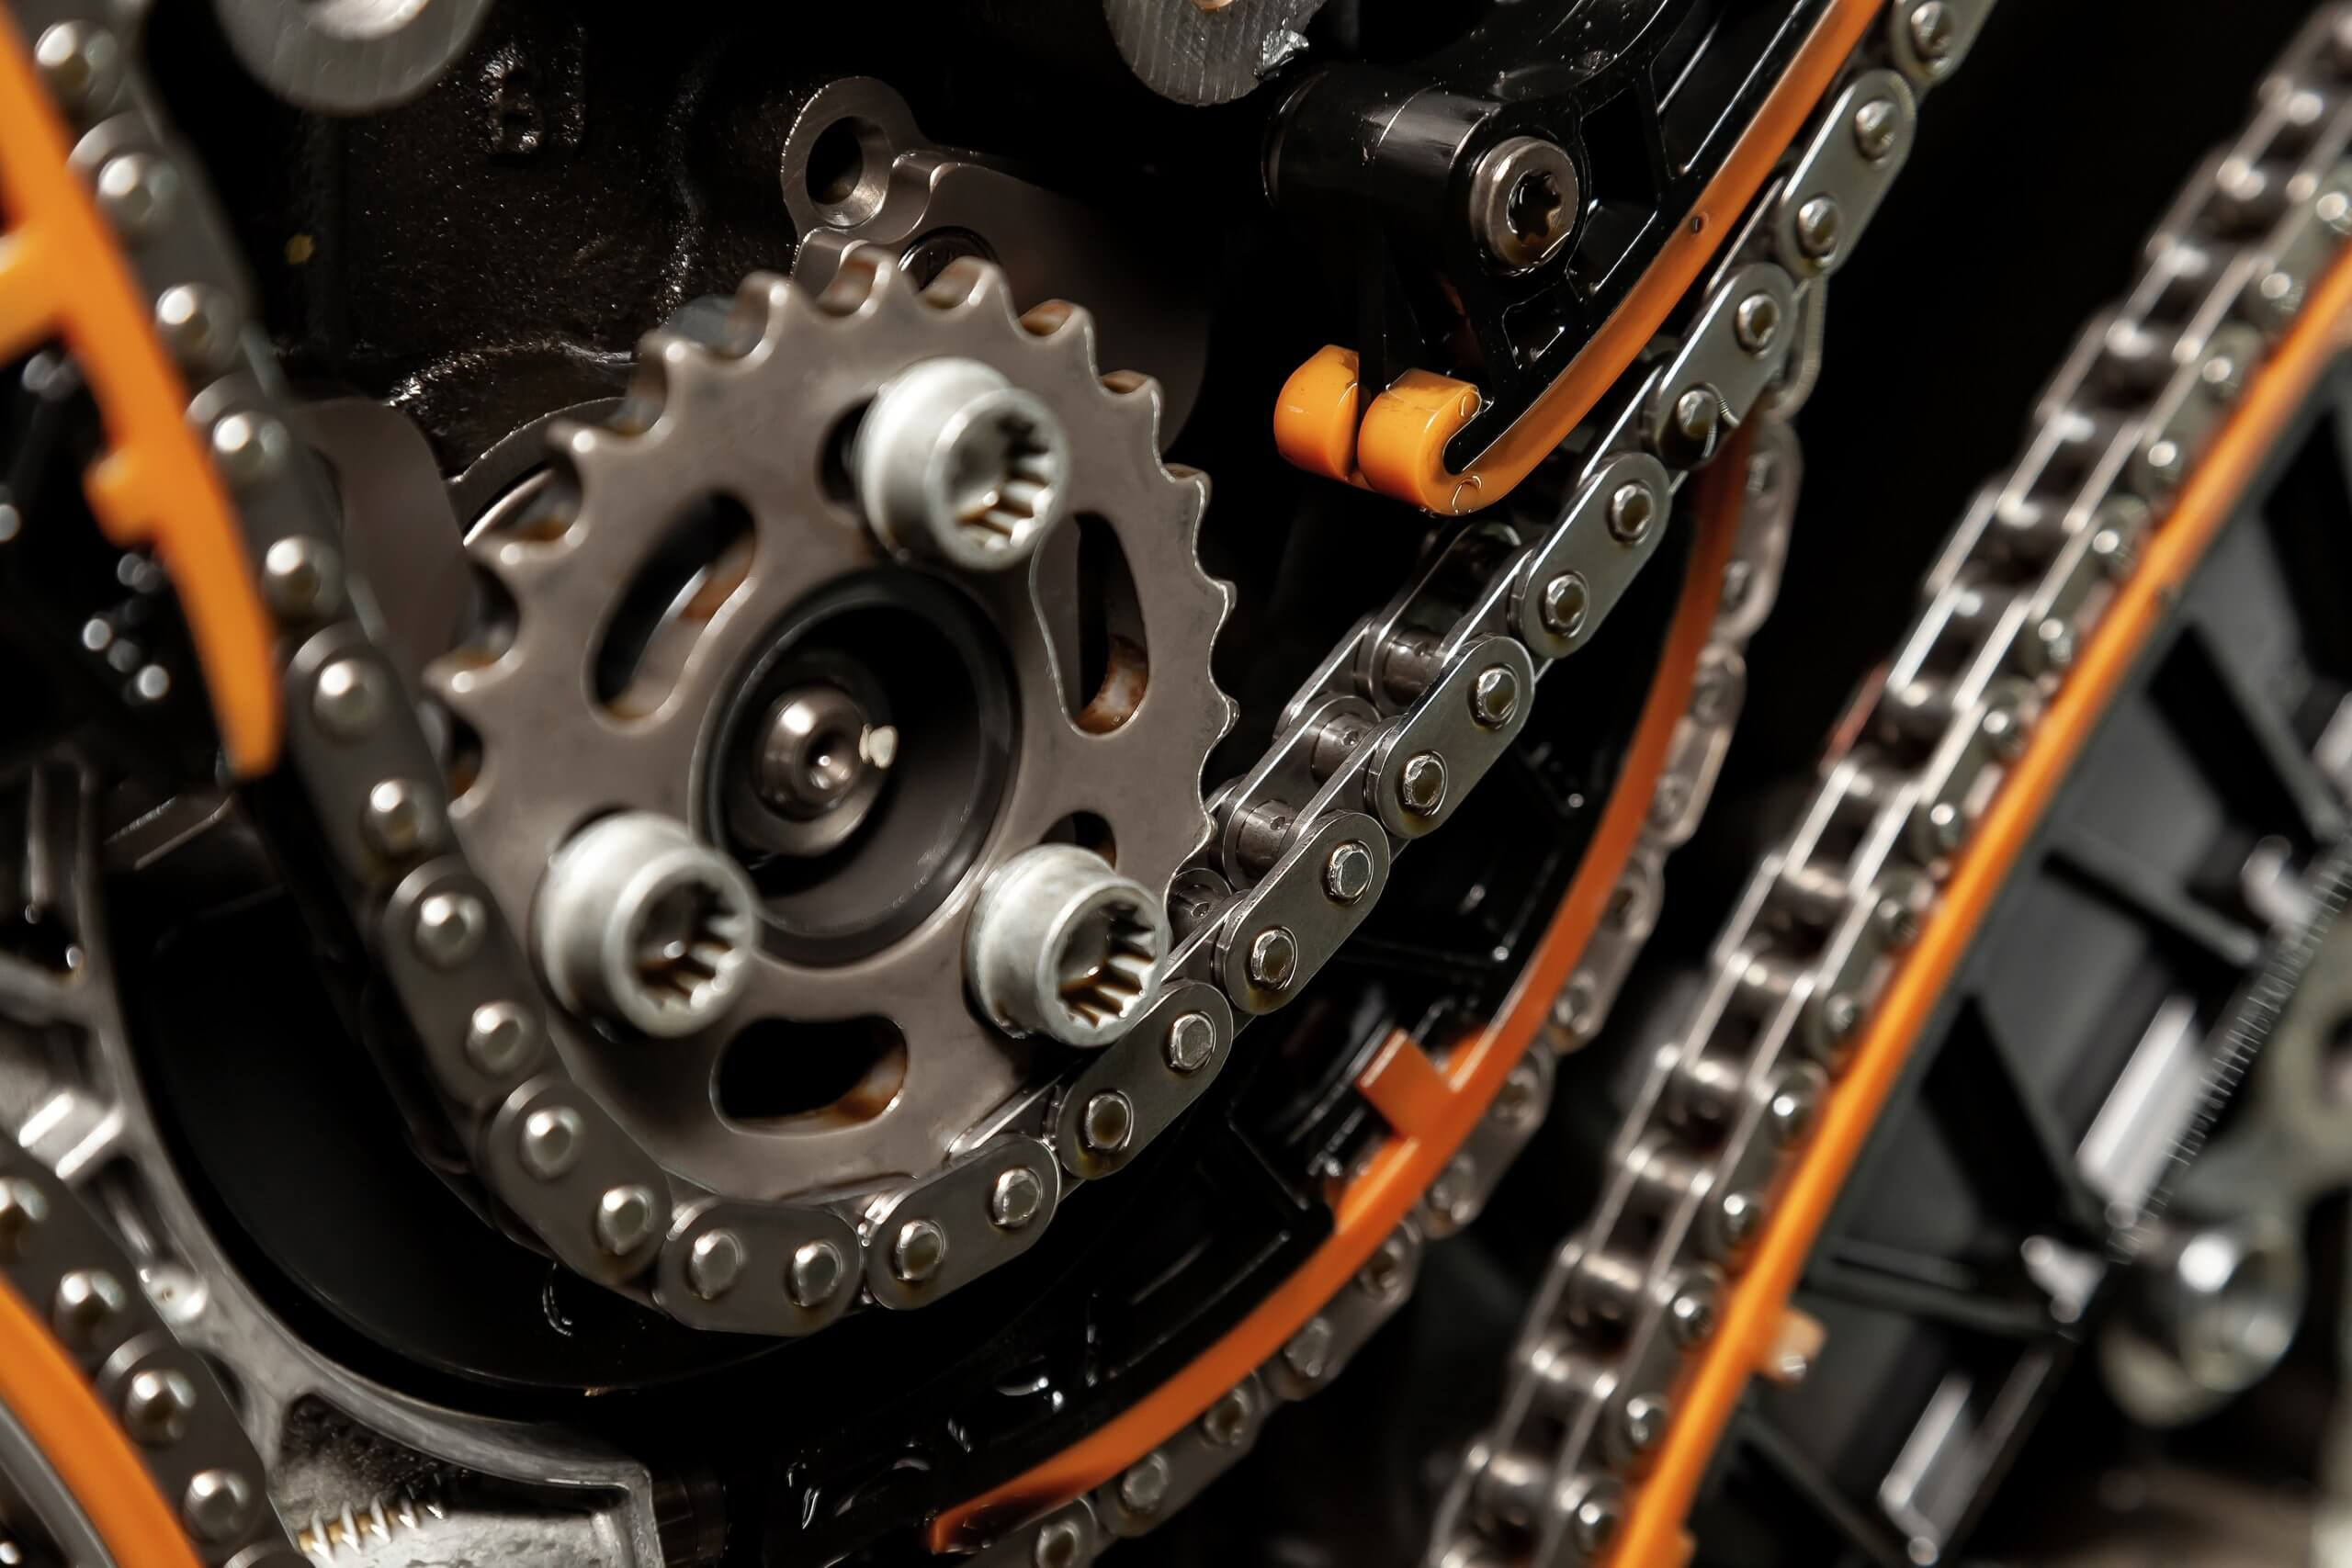 close up image of timing chain, linked metal chain attached to car engine